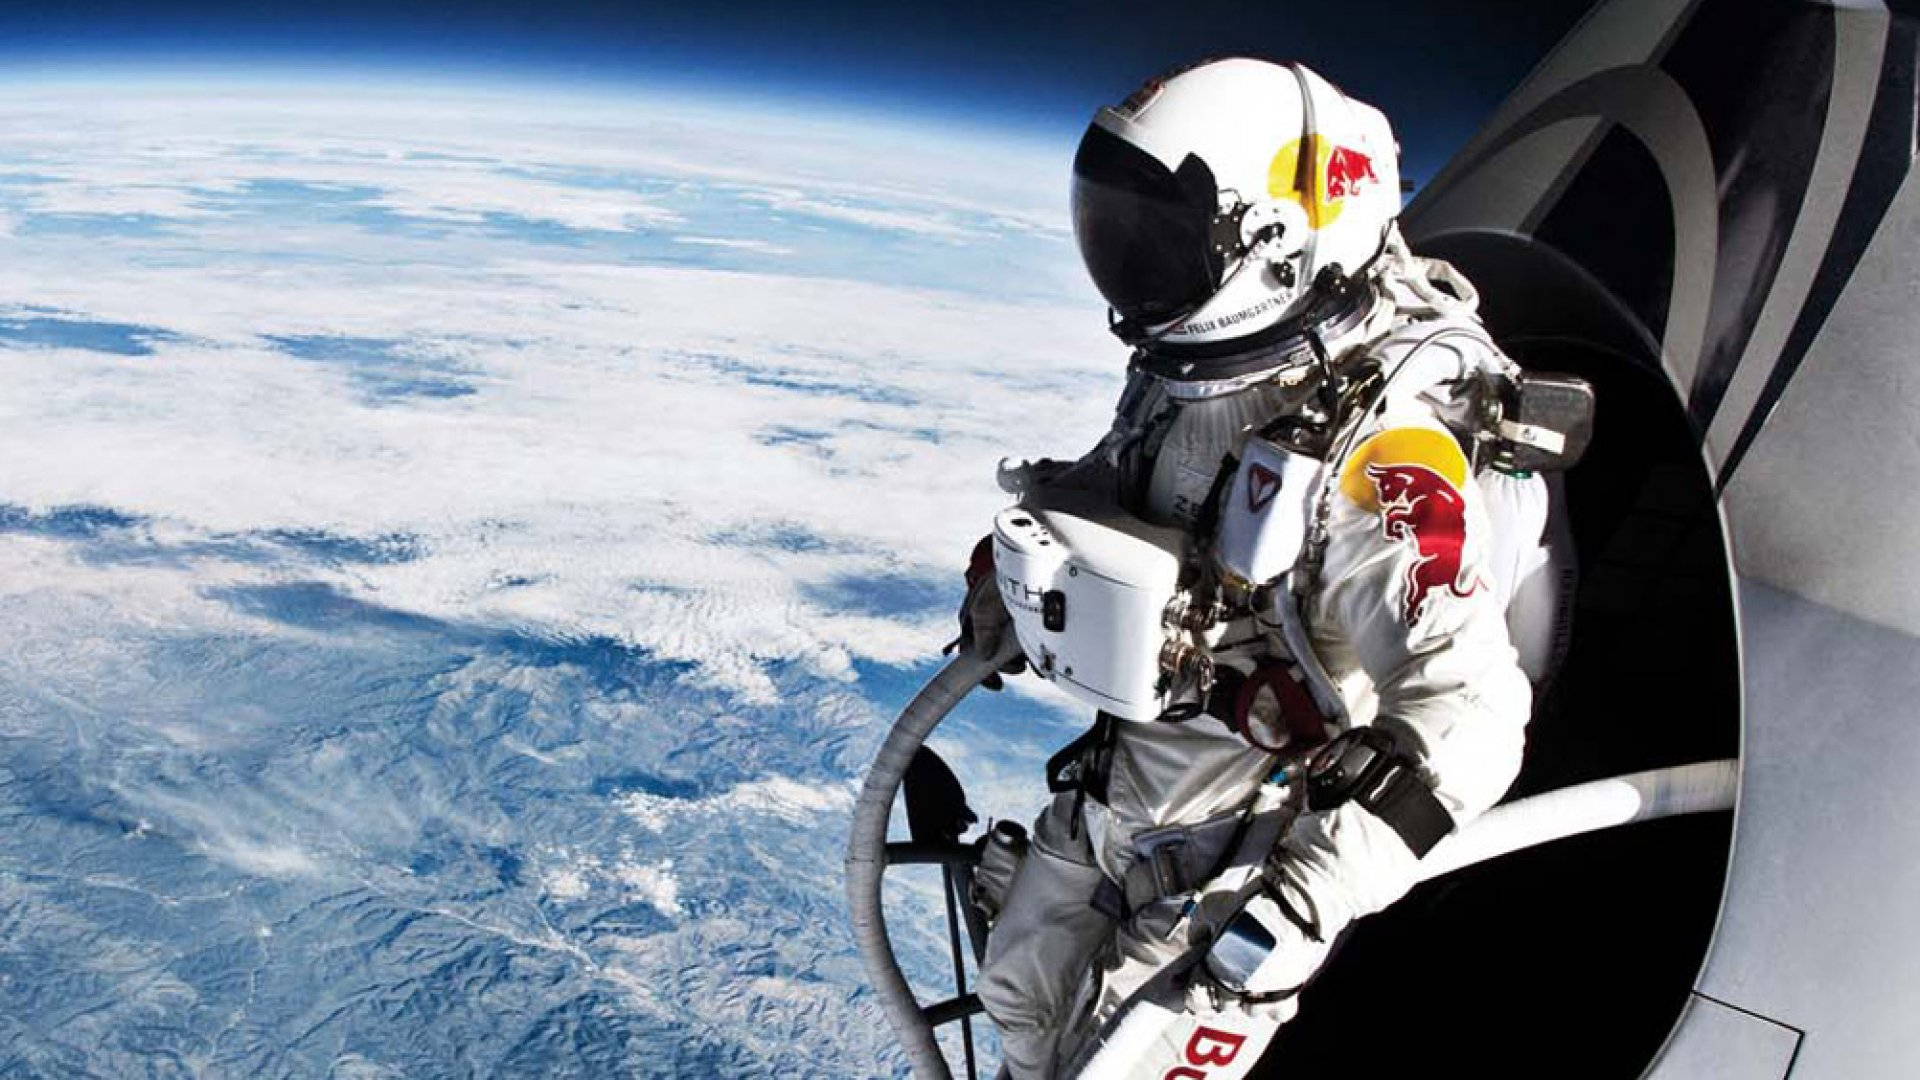 <b>RECORD BREAKER</b>